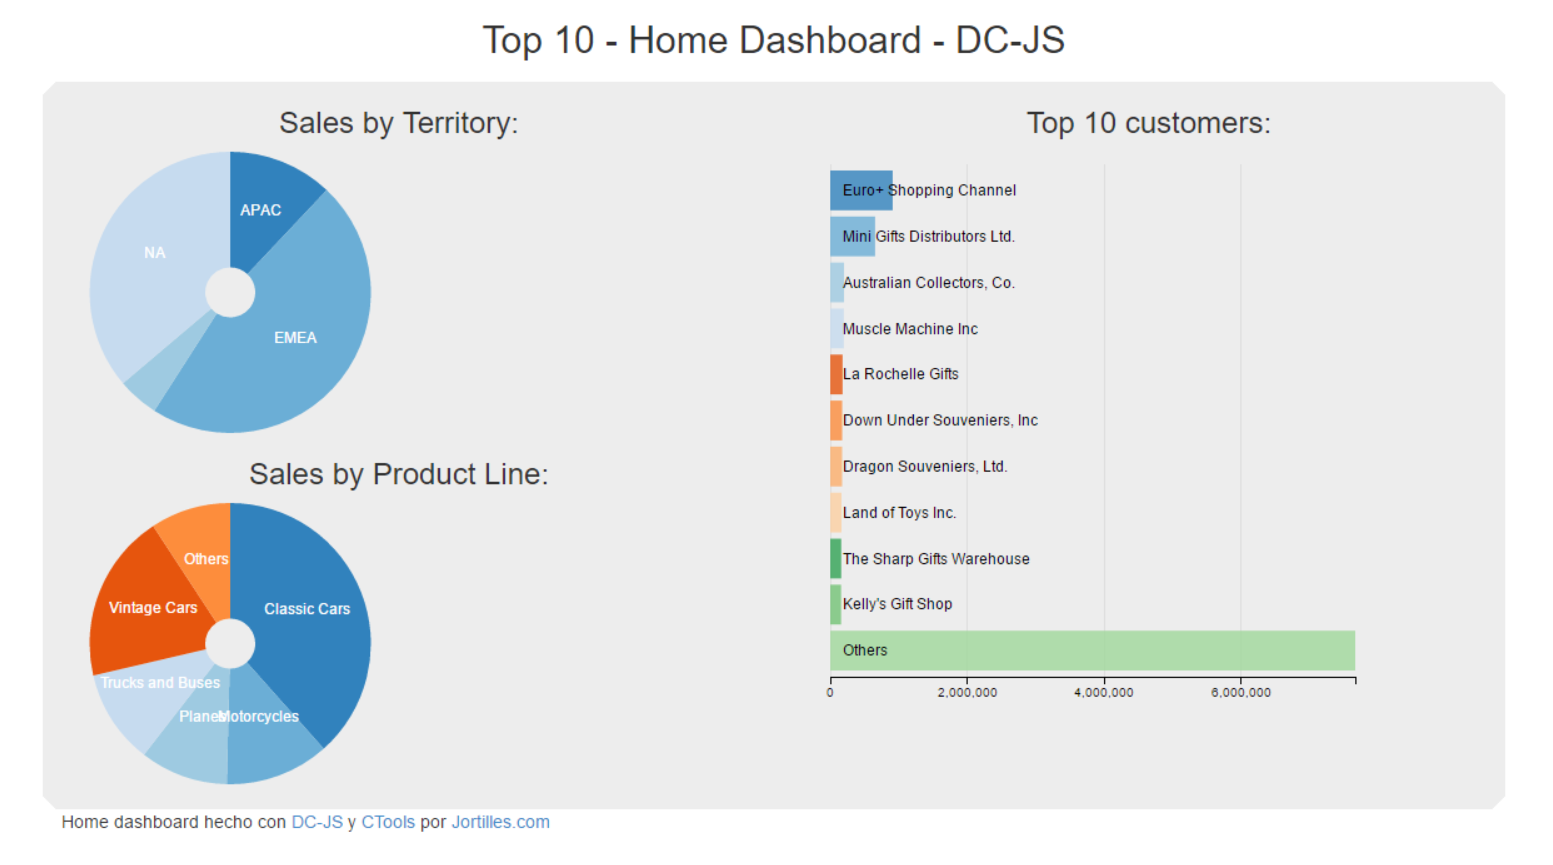 Top 10 Home Dashboard DC-JS